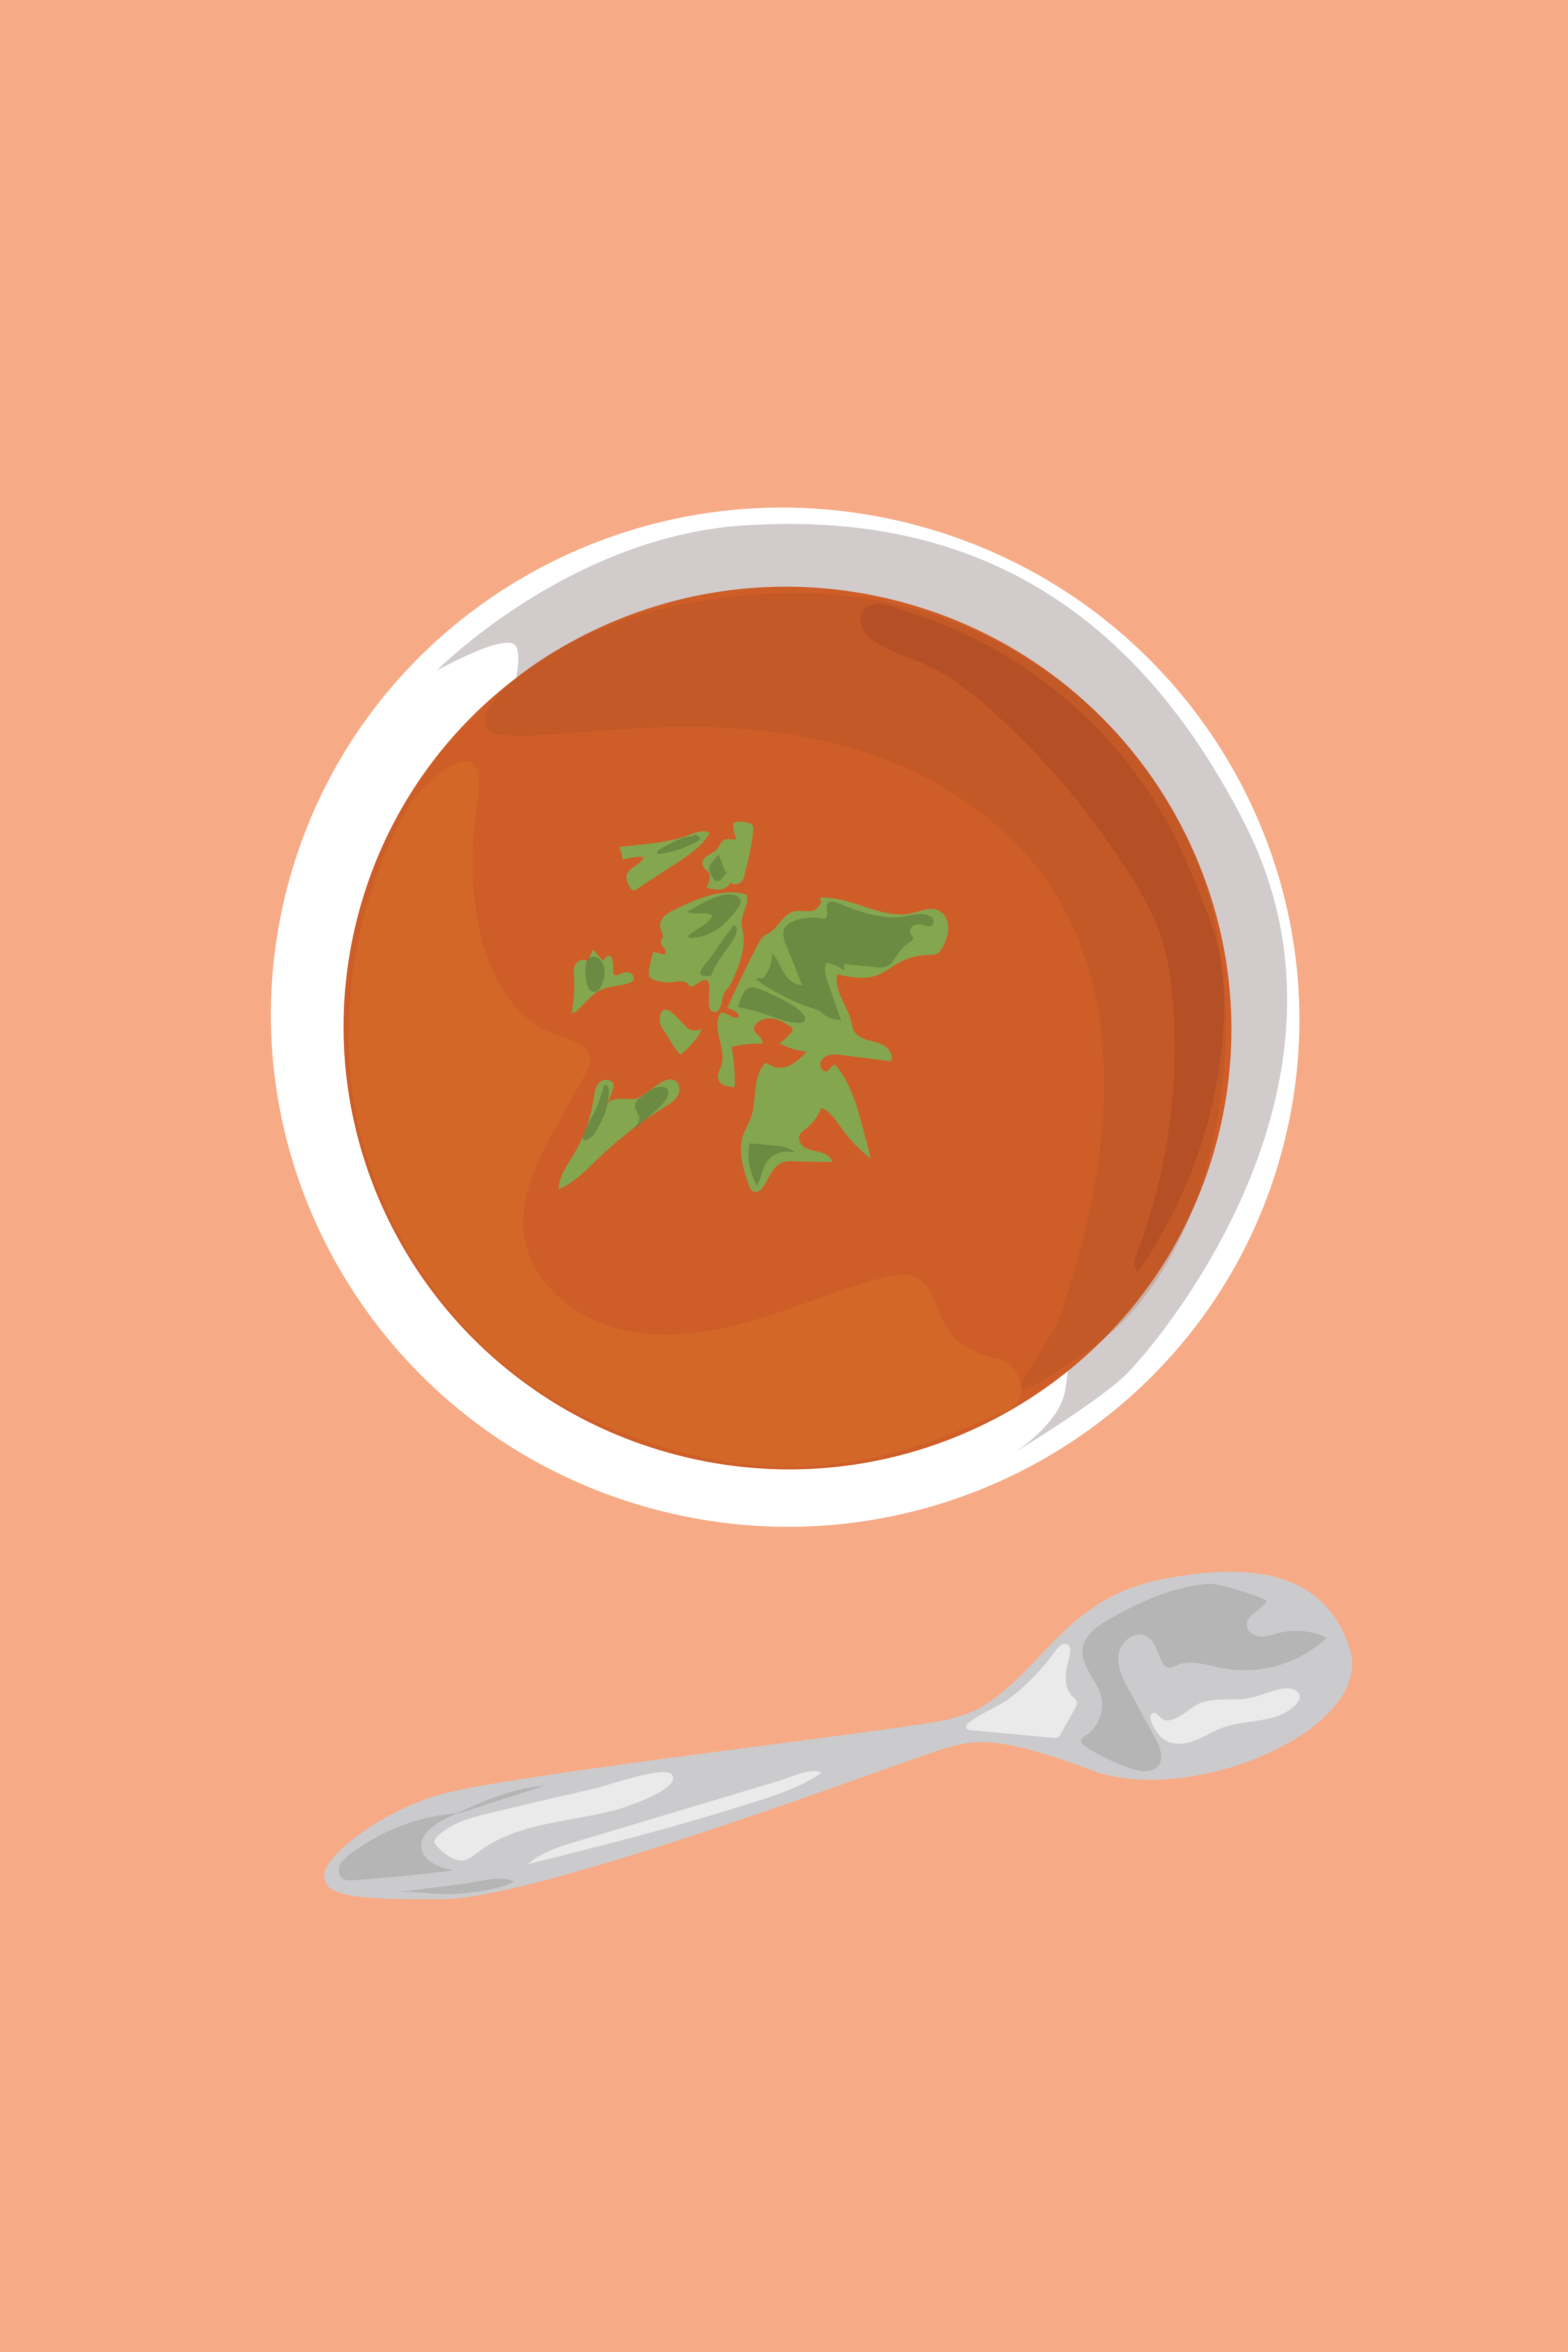 Hangover remedies - pickle, broth, coffee and not only